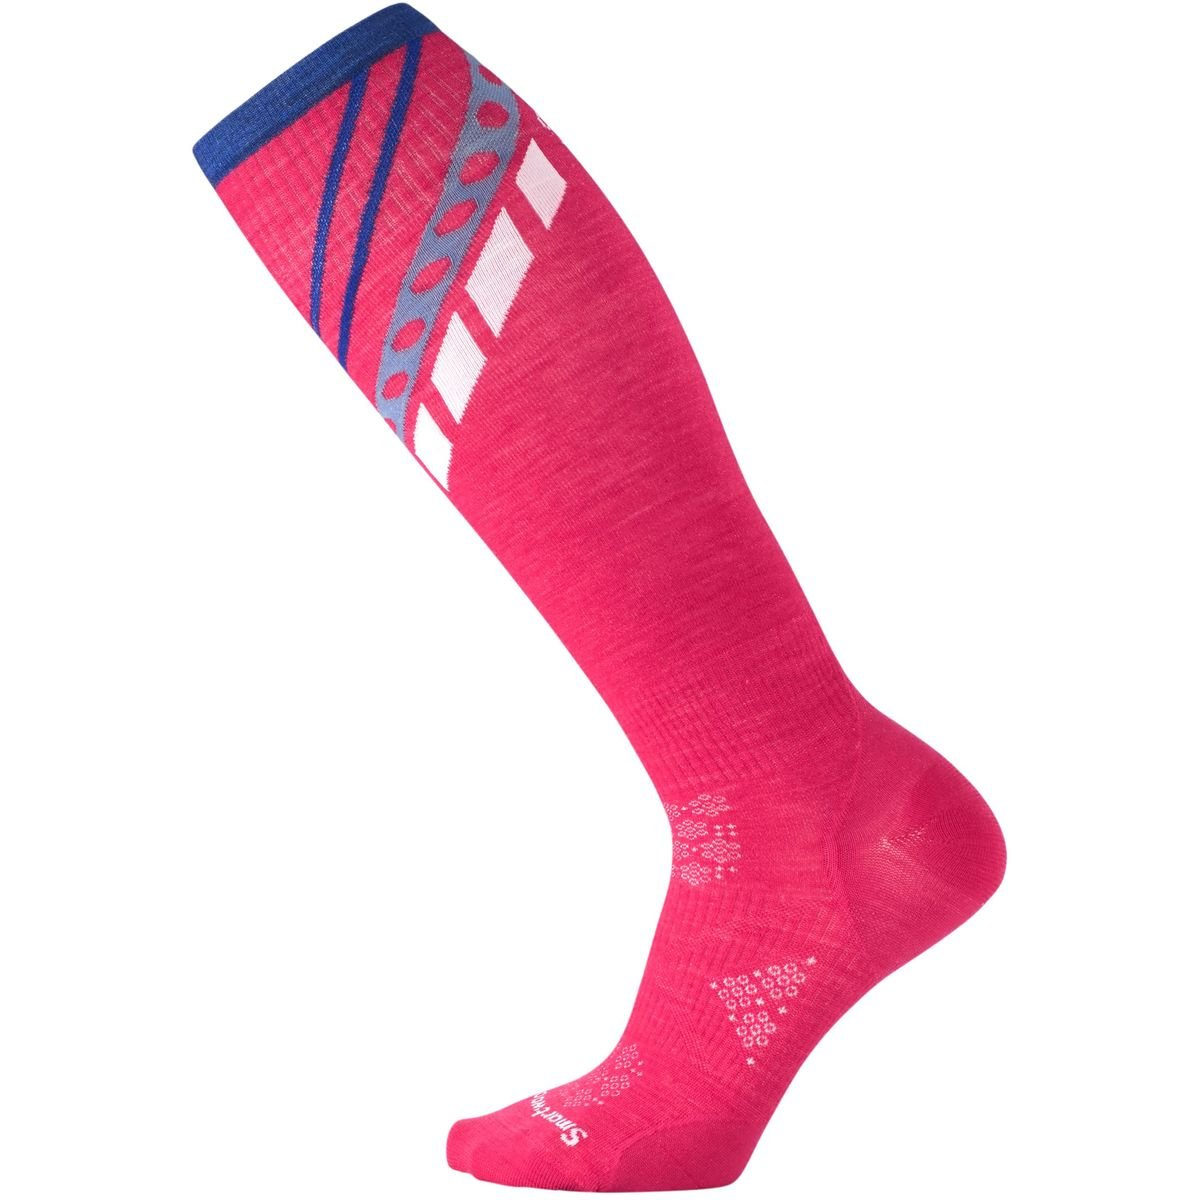 Smartwool Women's PhD Ski Ultra Light Pattern Socks (Potion Pink) Small SW015015-906-S